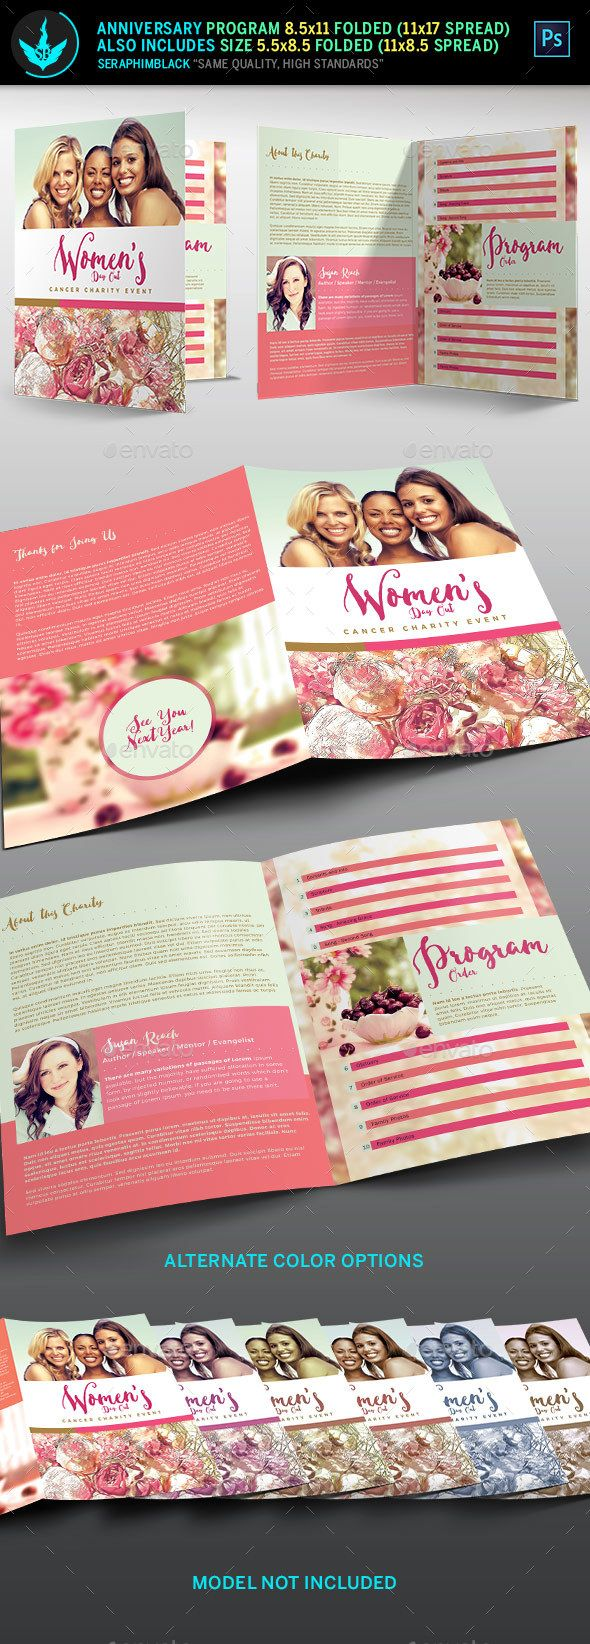 WomenS Day Out Event Program Template  Program Template Psd